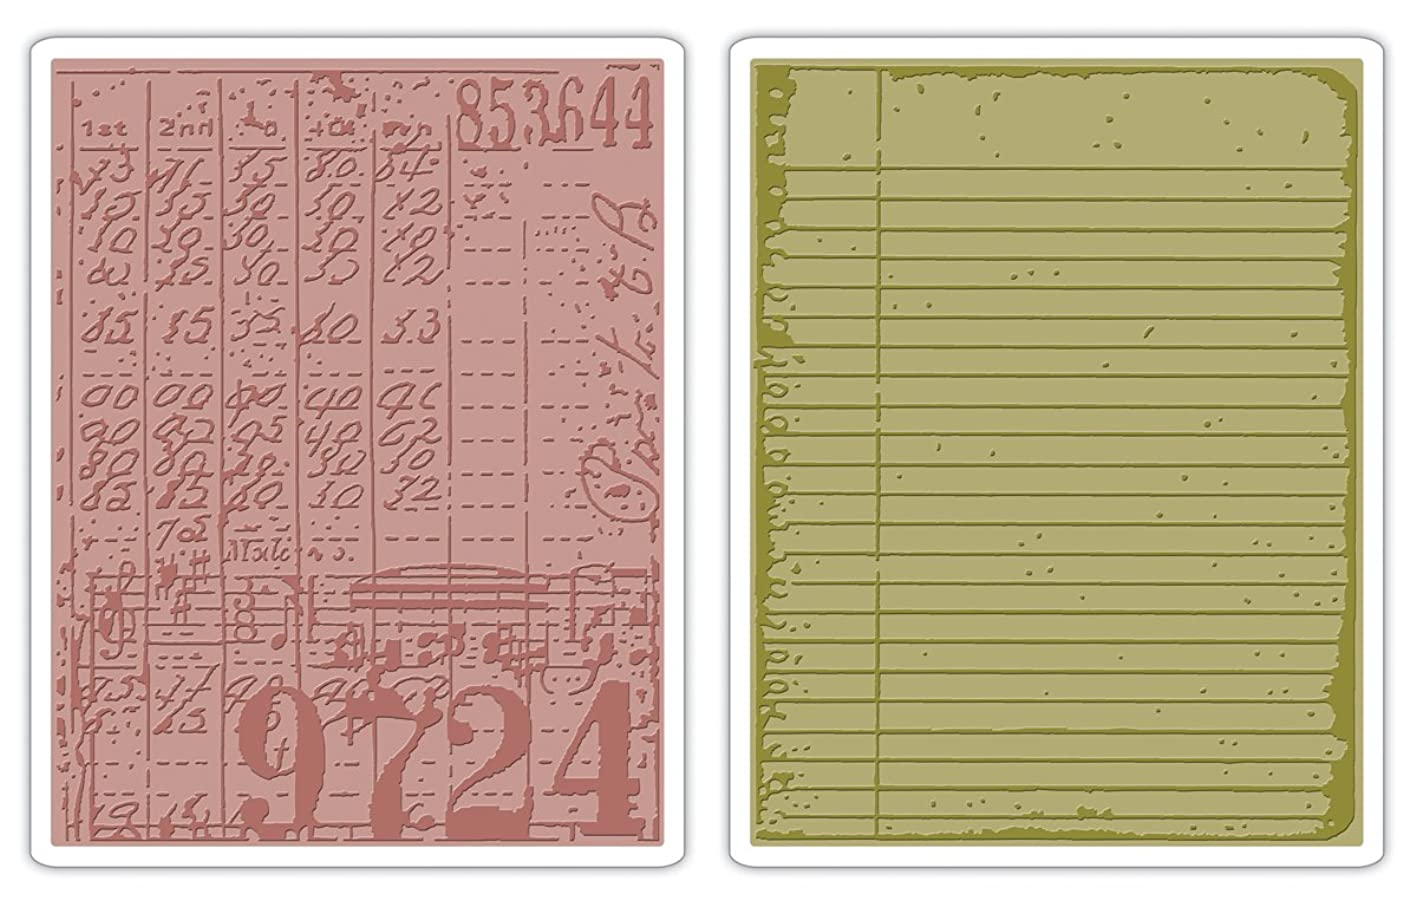 Sizzix 656647 Texture Fades Embossing Folders, Collage & Notebook Set by Tim Holtz, Pack of 2, Multicolor vjiywtbvojk843